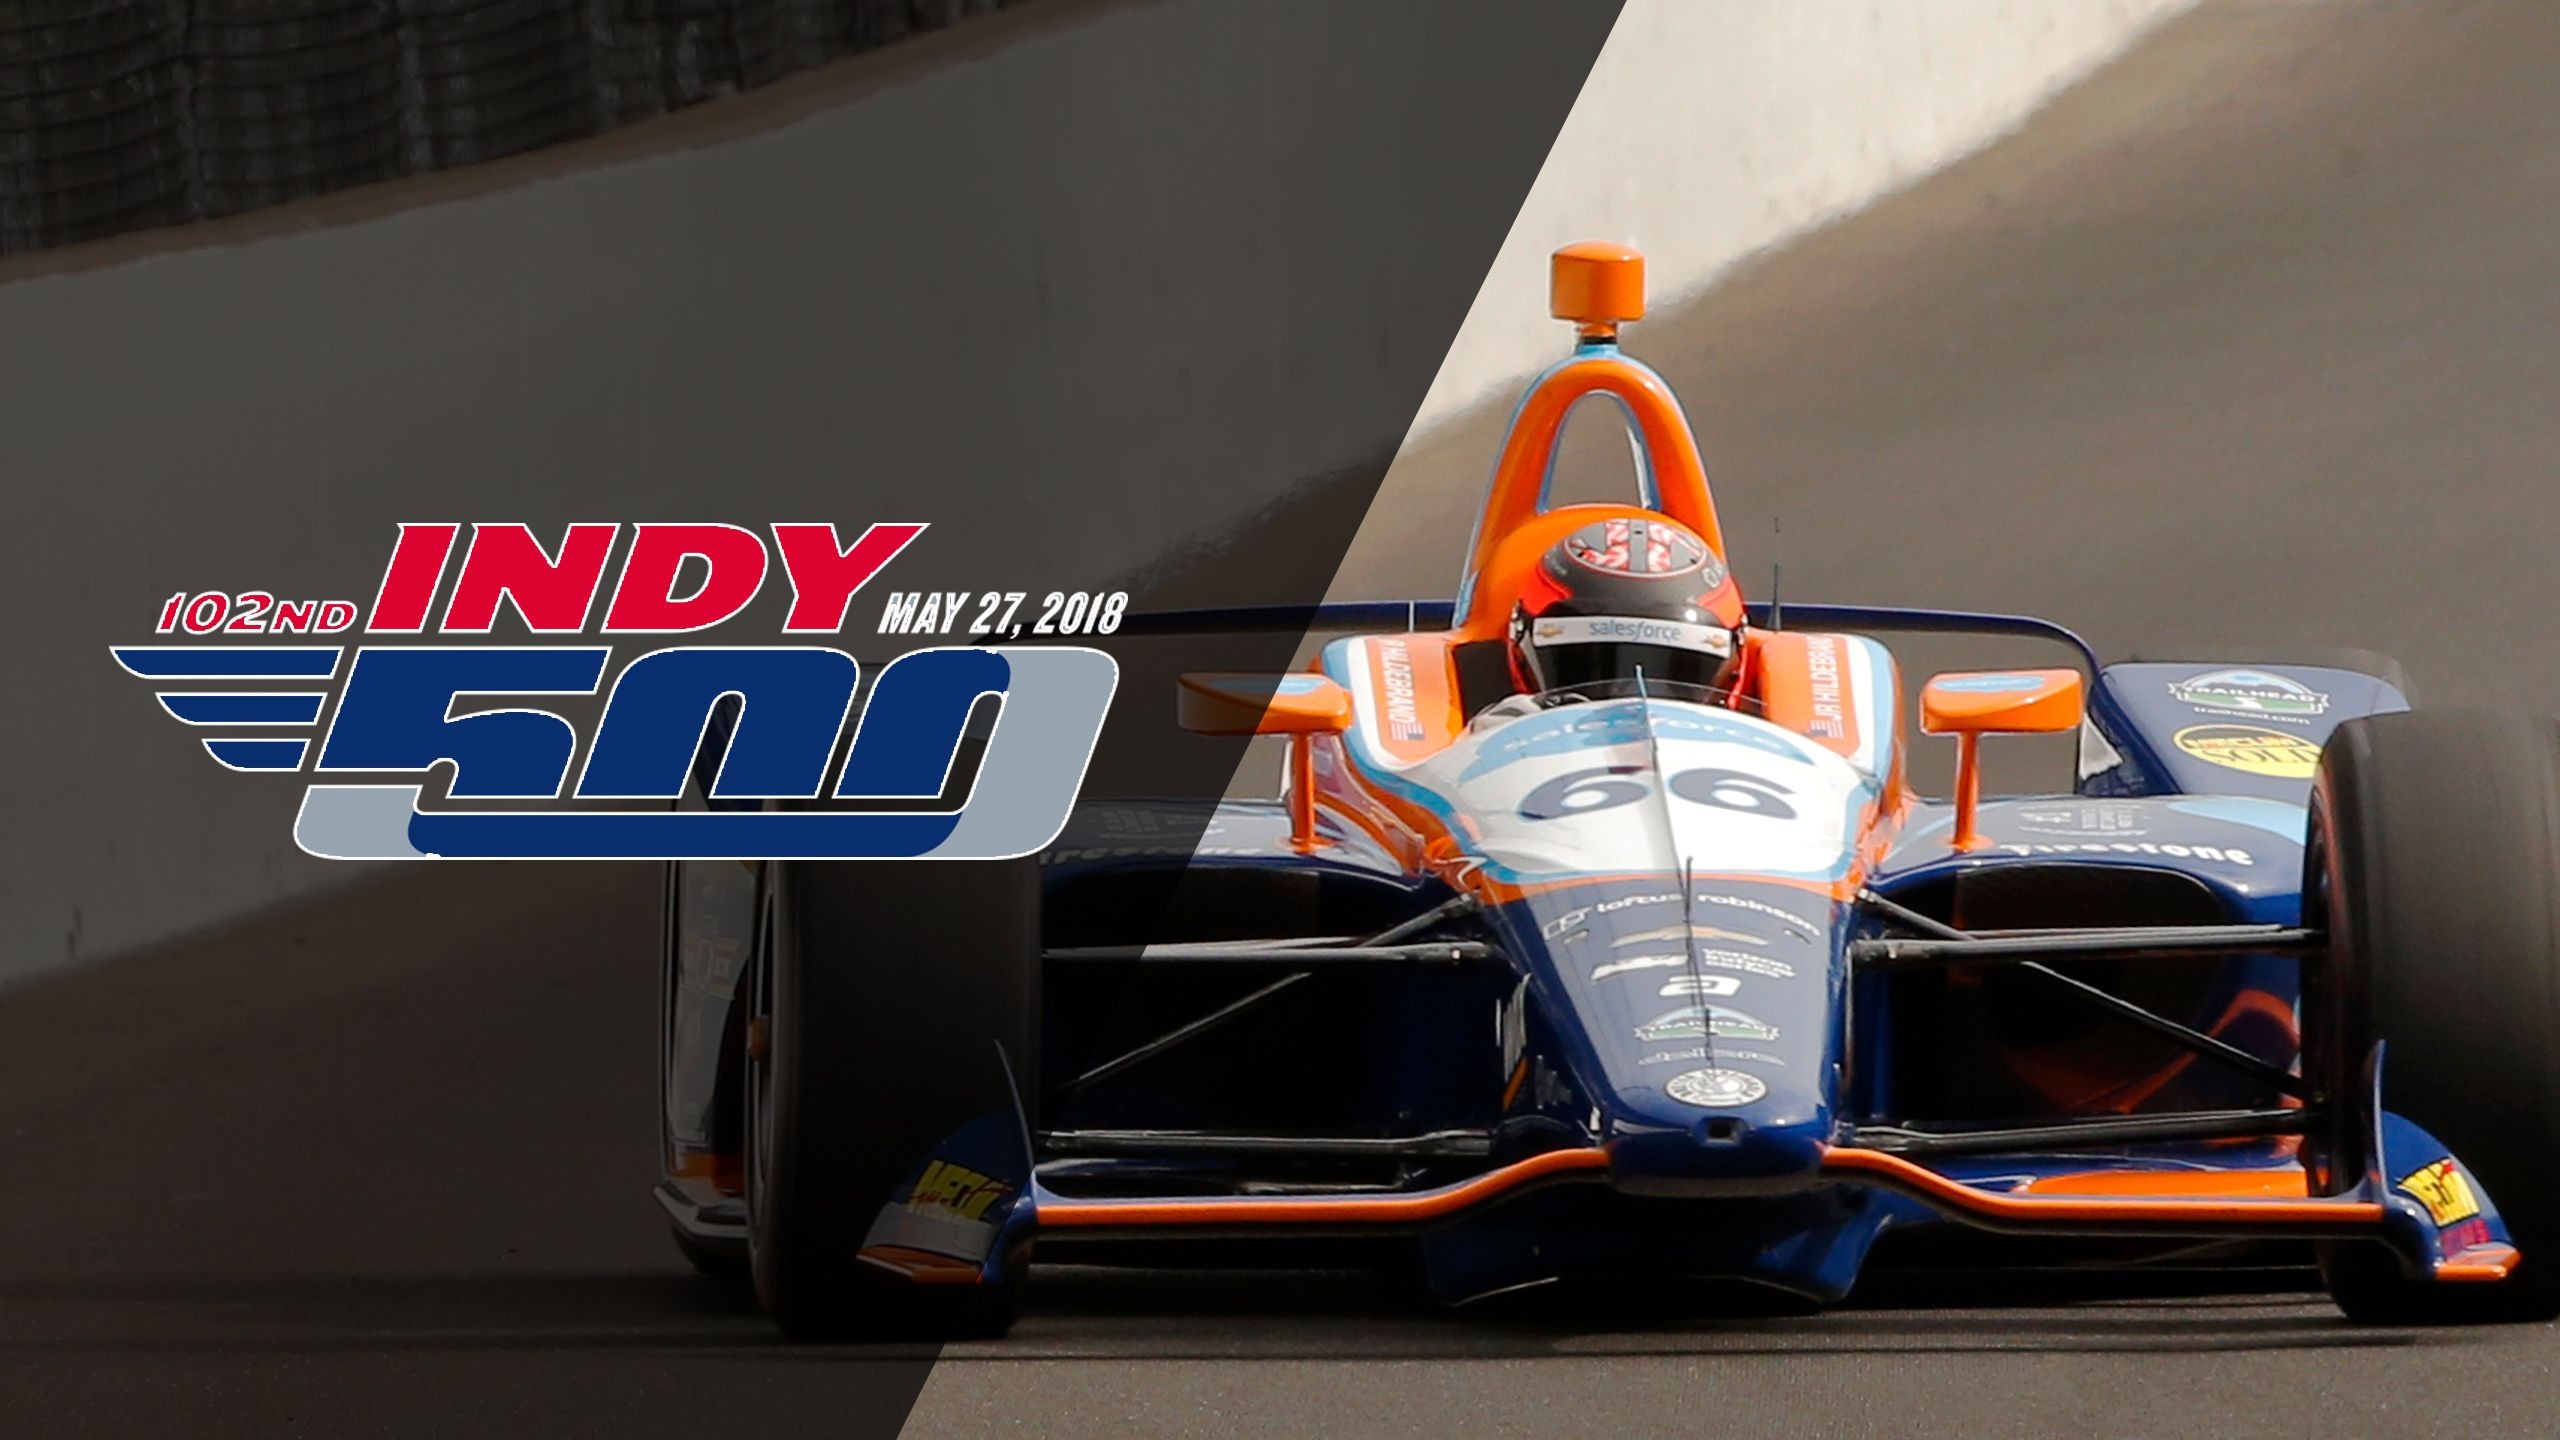 Indianapolis 500 Qualifying Day 2